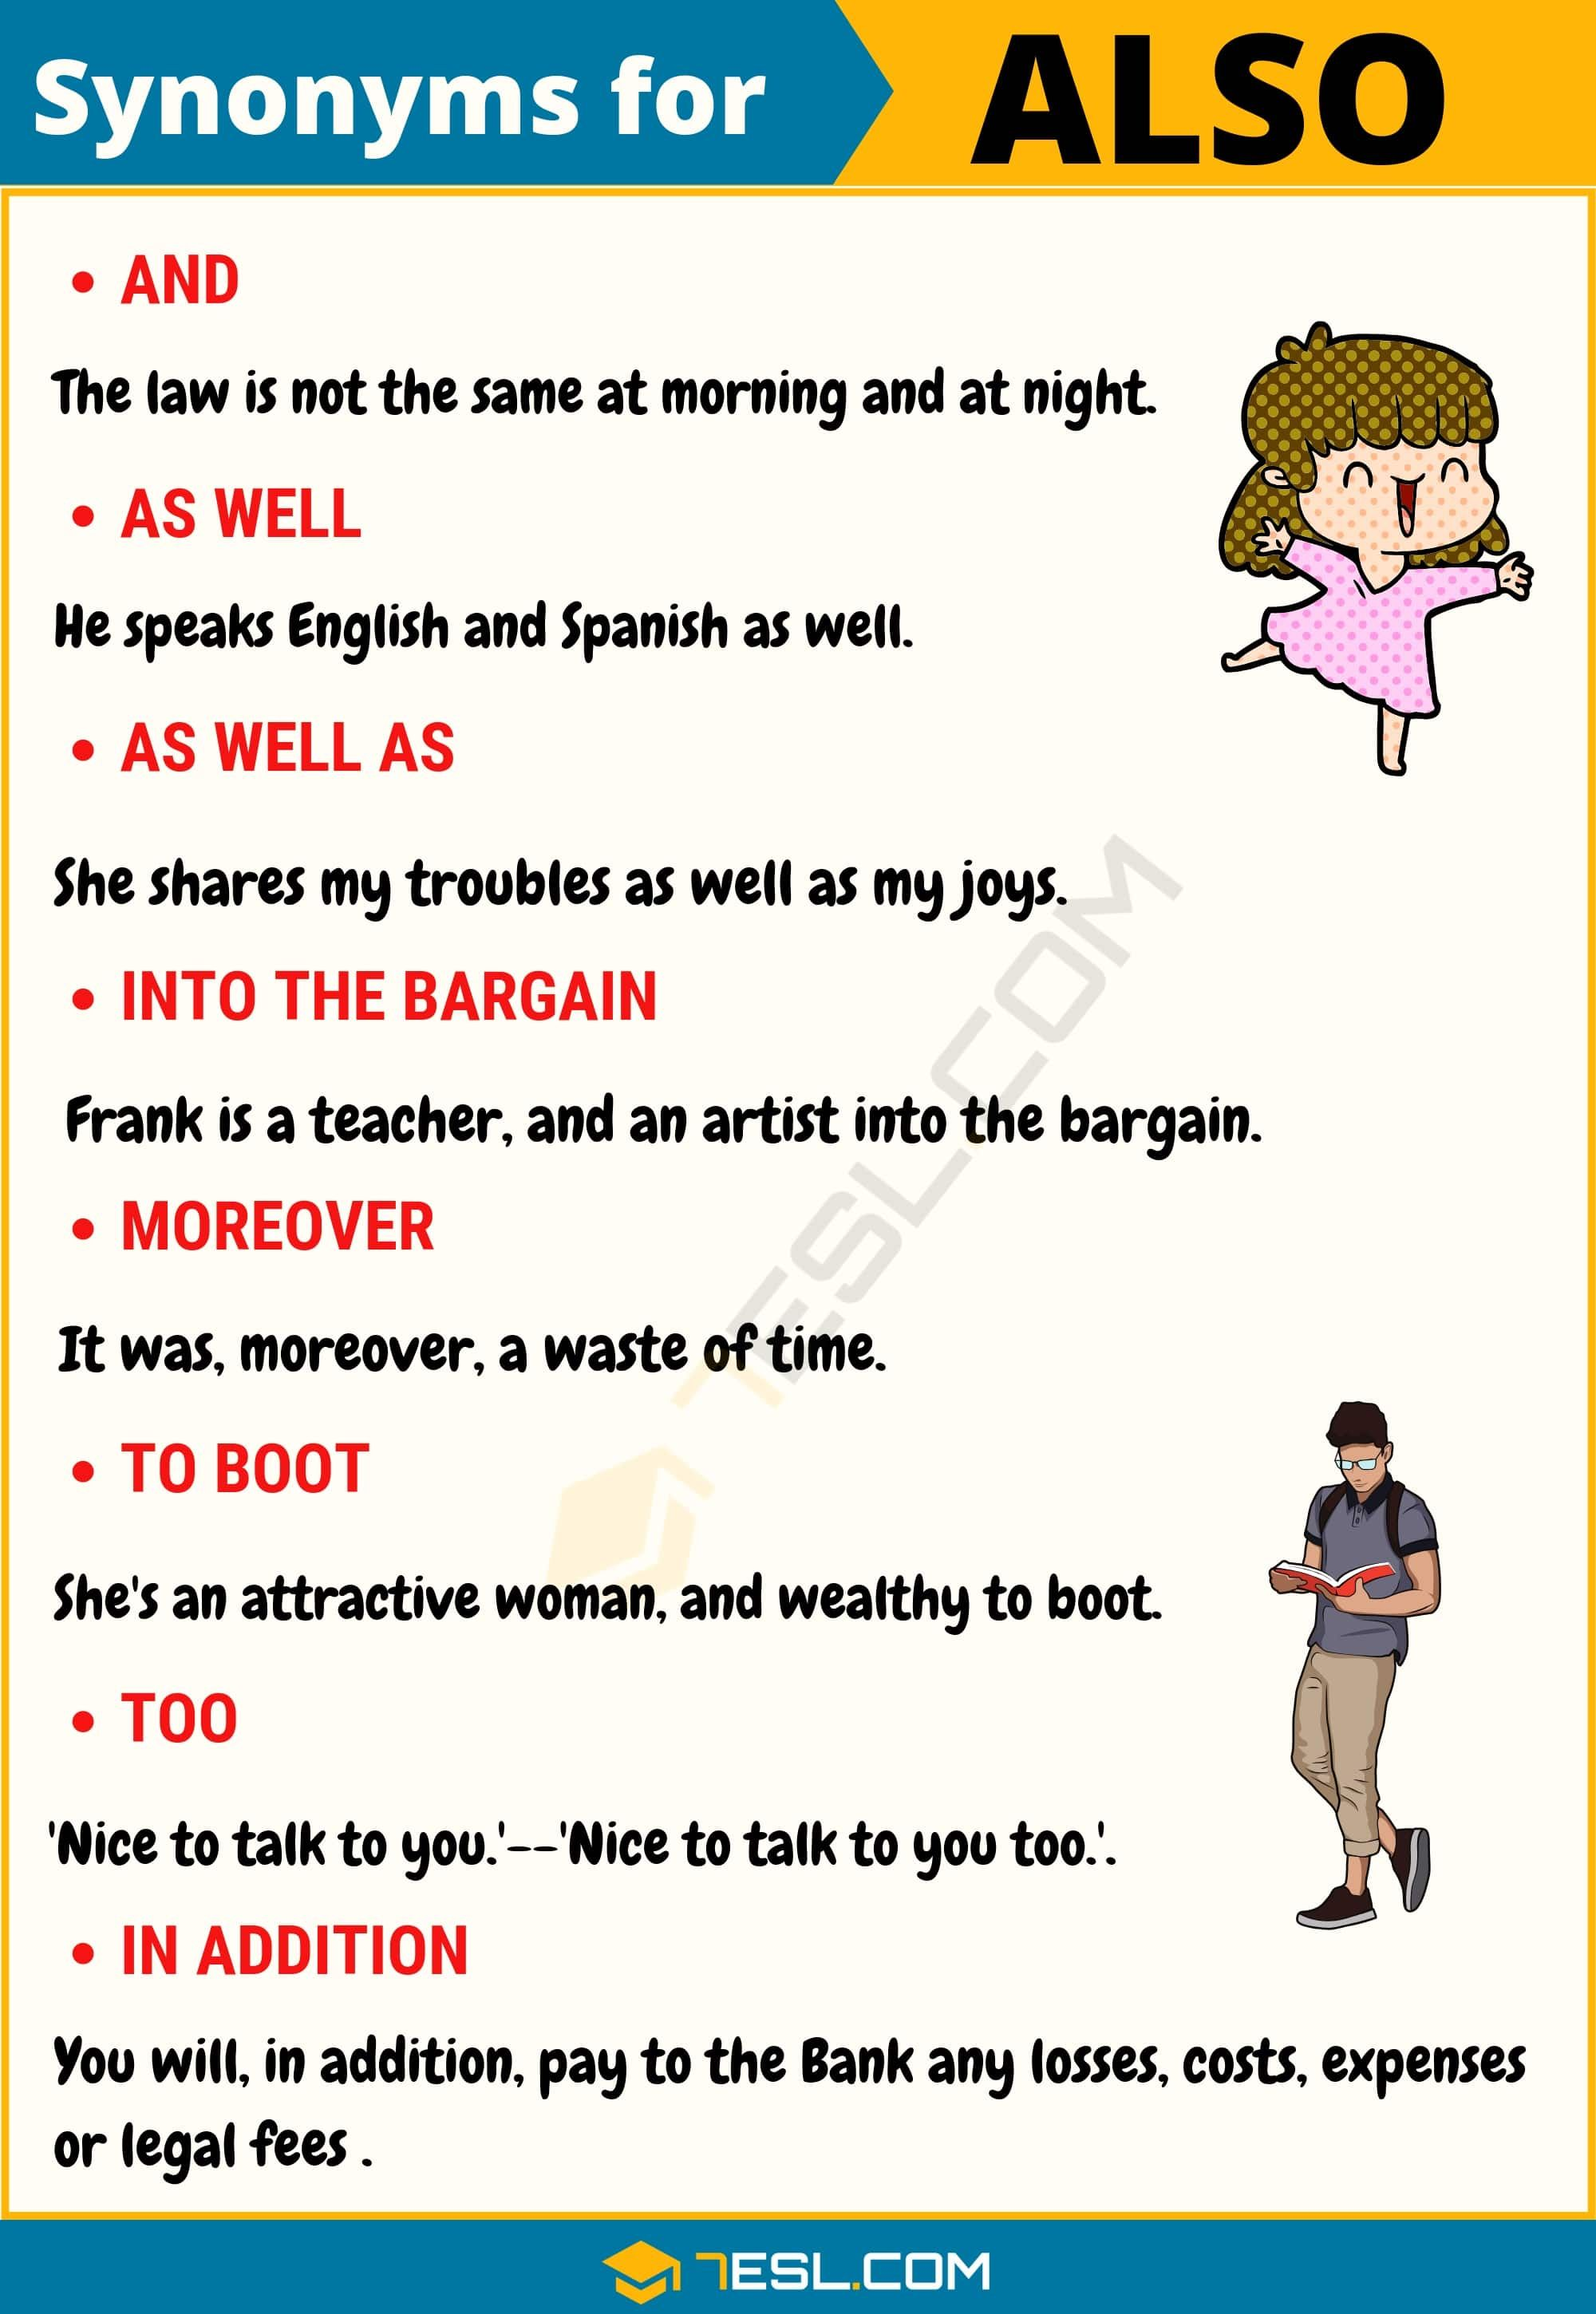 ALSO Synonym List of 20 Synonyms for Also with Examples   20 E S L ...